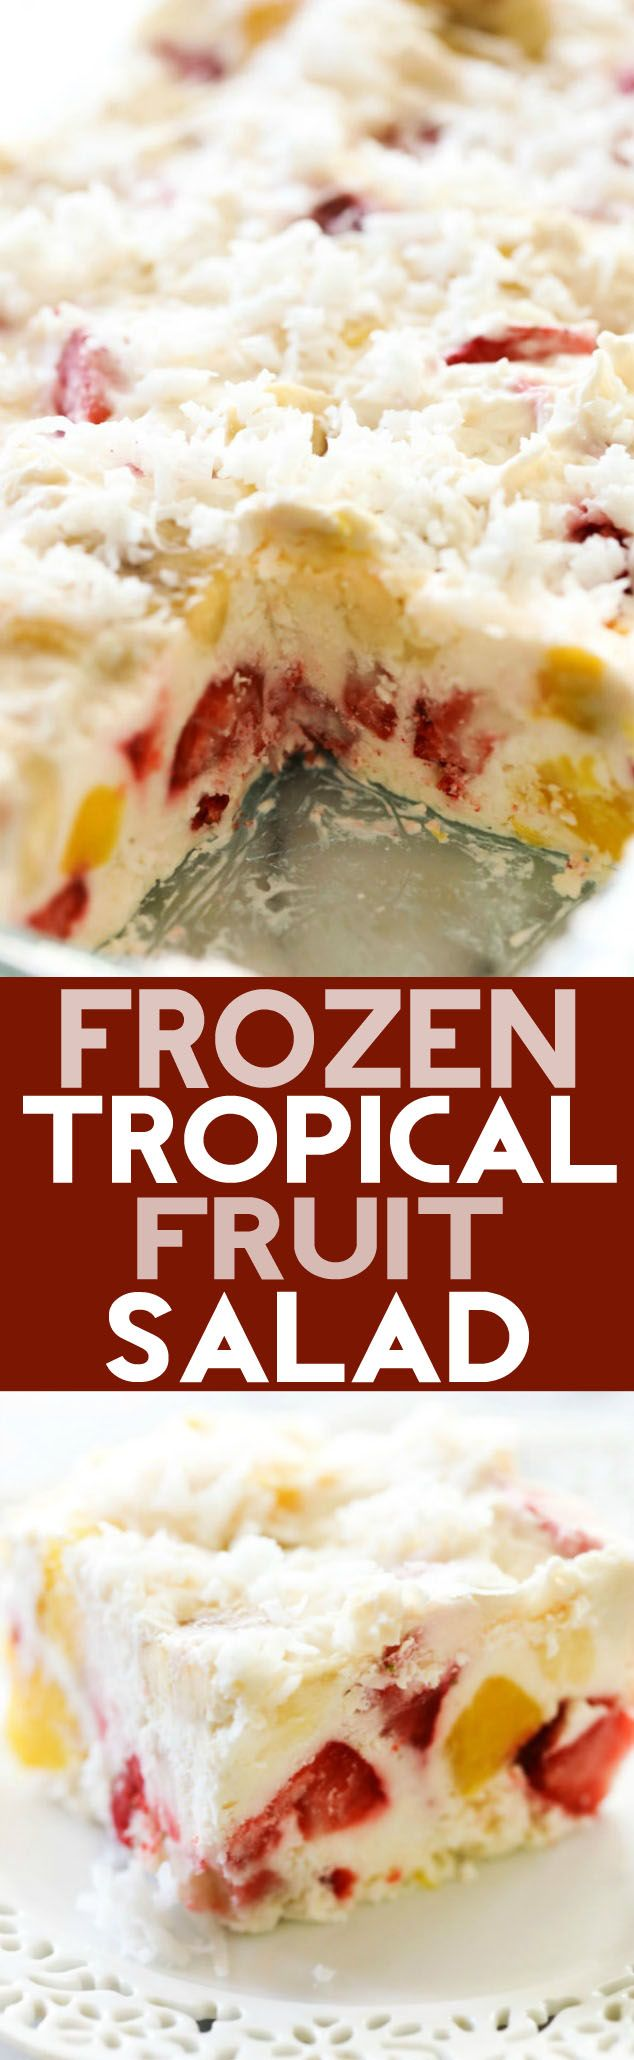 This Frozen Tropical Fruit Salad is a delicious combination of fruit and cream. It is frozen for the perfect easy treat to cool down with this summer!